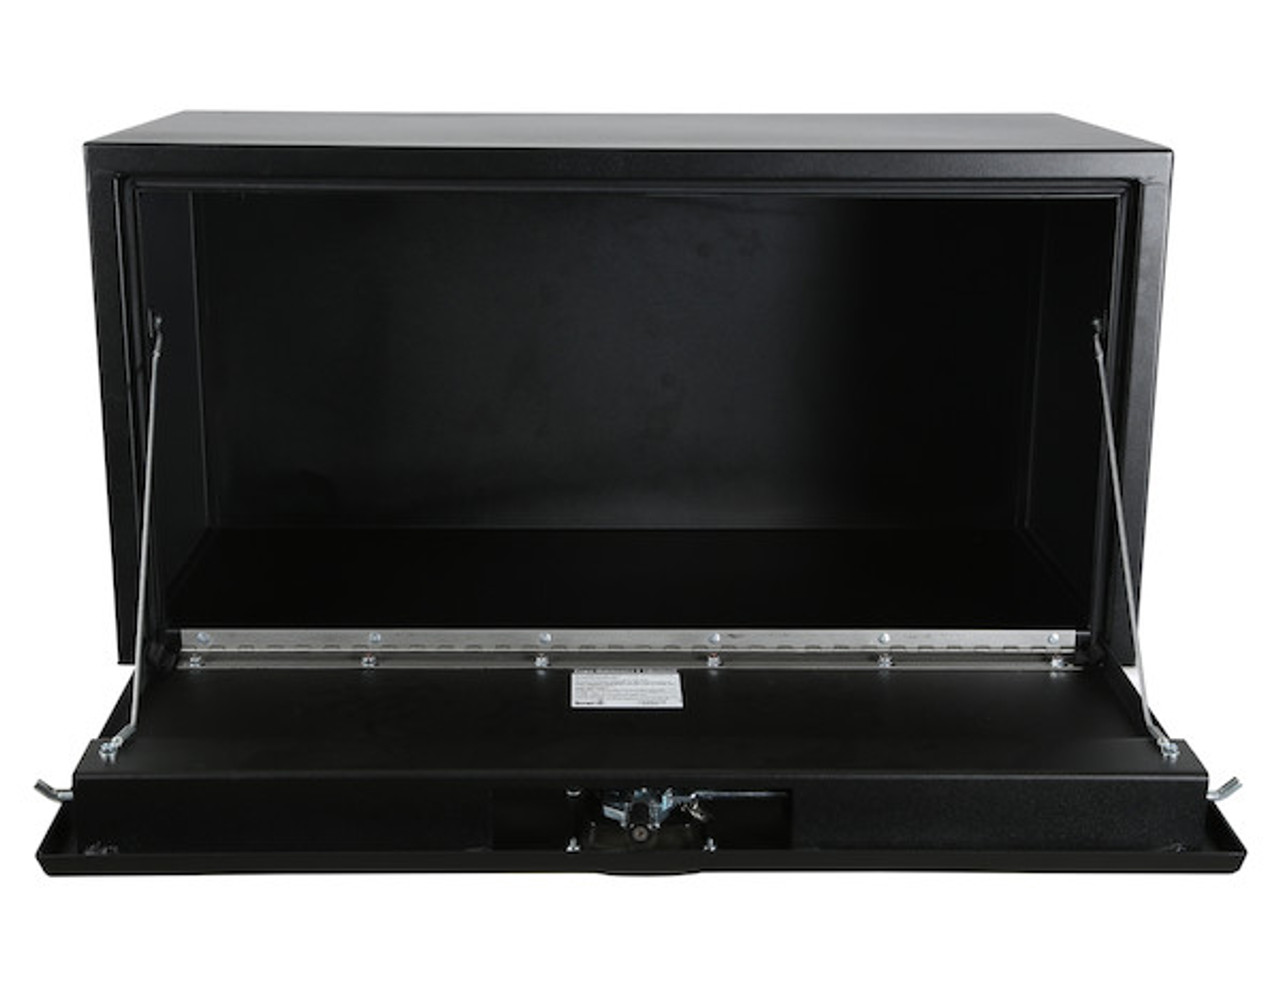 "1734500 BUYERS PRODUCTS TEXTURED MATTE BLACK STEEL UNDERBODY TRUCK TOOLBOX WITH 3-POINT LATCH 24""Hx24""Dx24""W  Picture # 5"